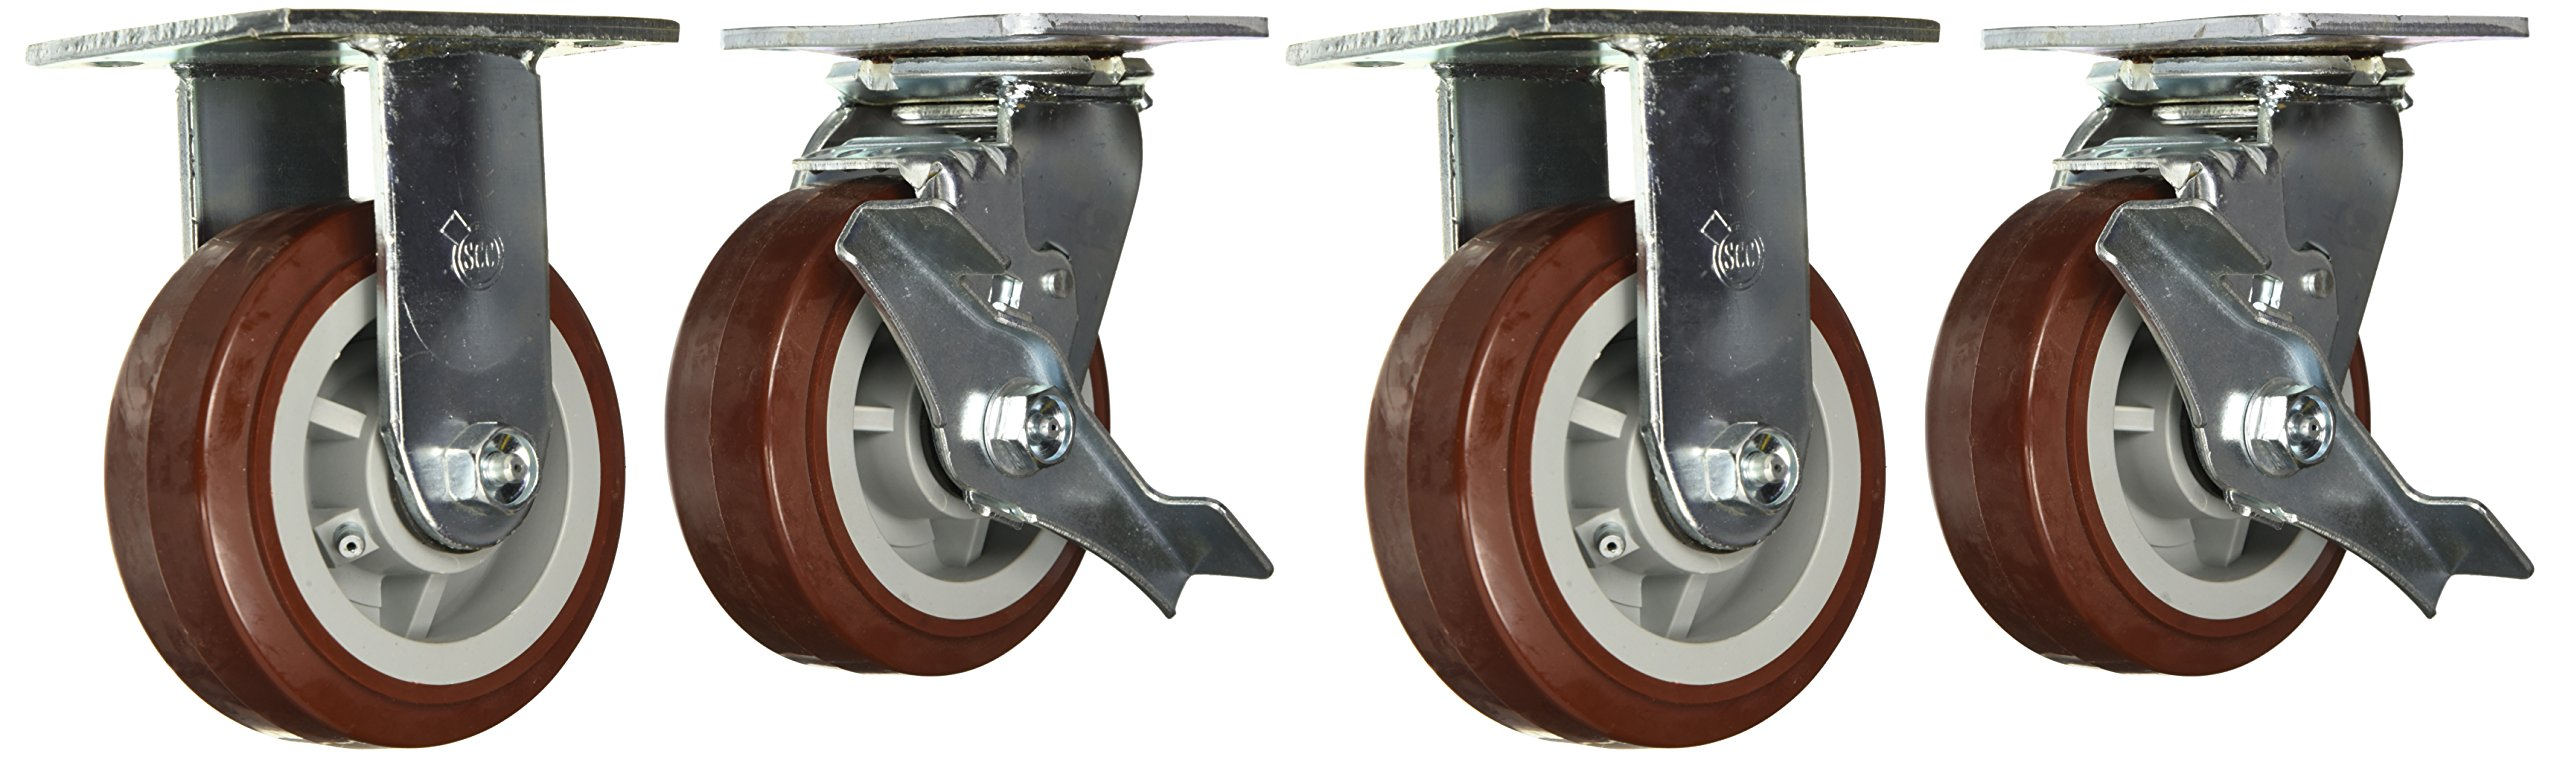 Service Caster SCC-30CS520-PPUR-TLB-2-R520-2 Heavy Duty Polyurethane Casters, Rigid with Brake, 5'' Size (Pack of 4)